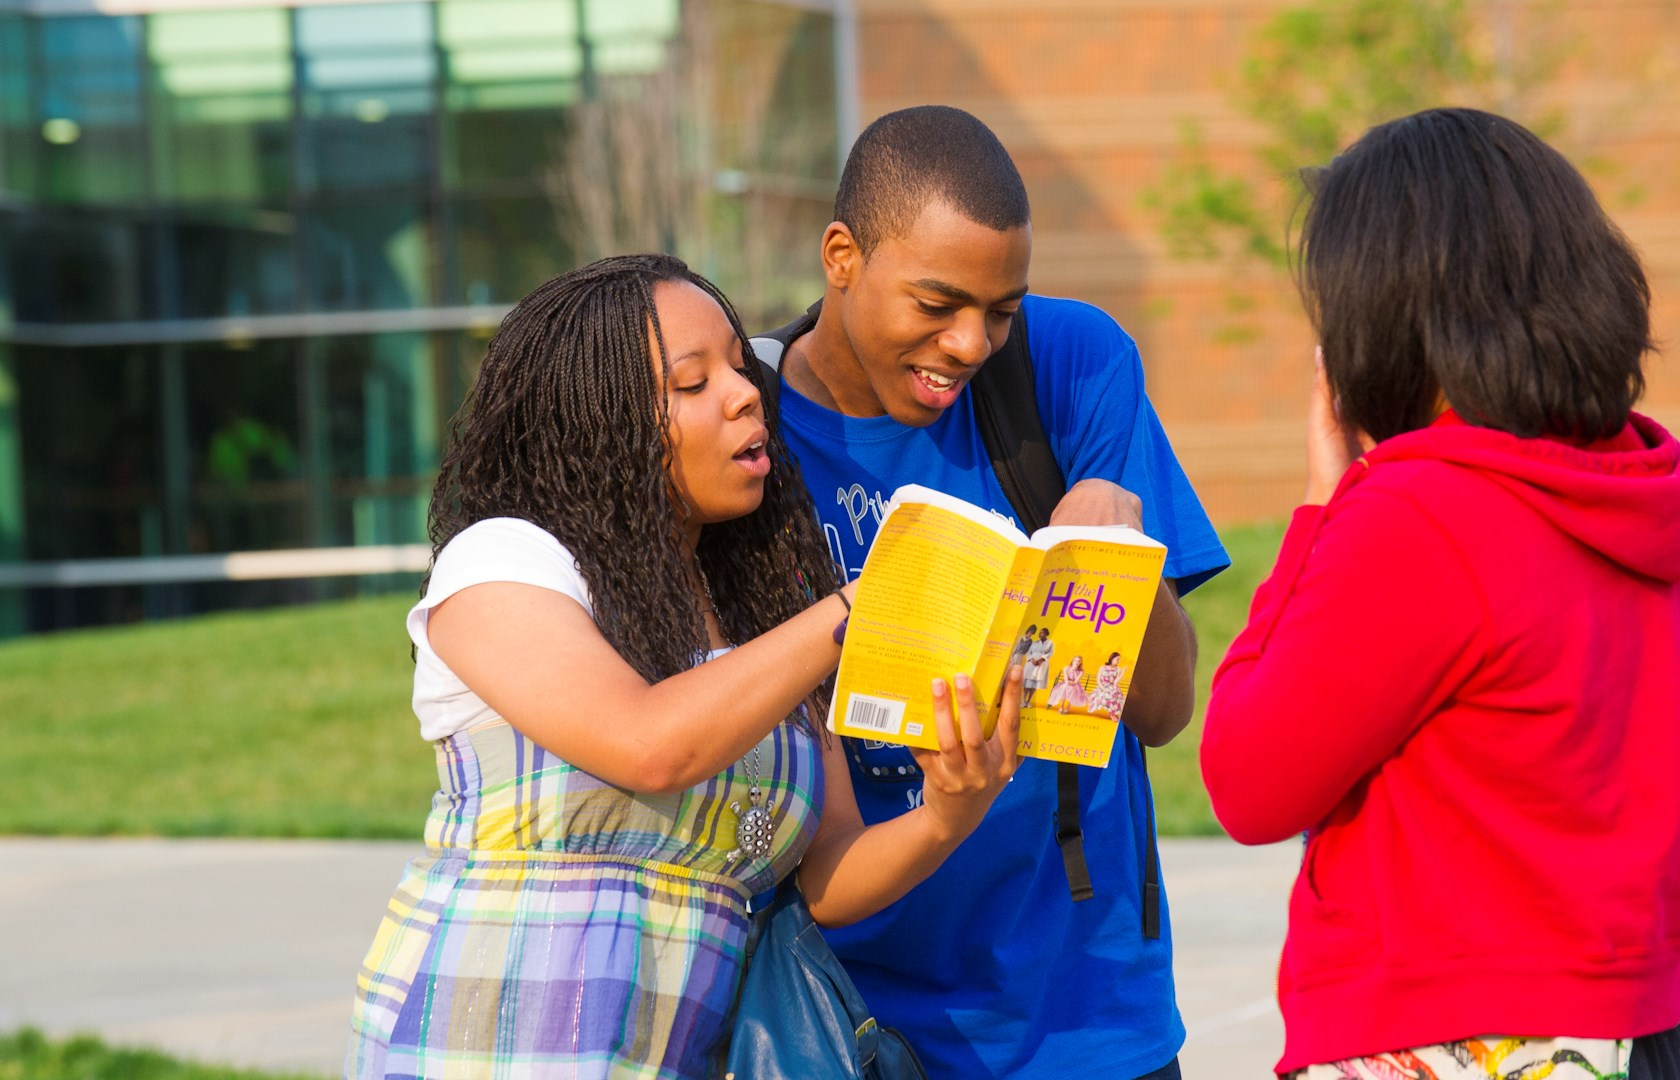 horiz minorities humored by a book on Quad